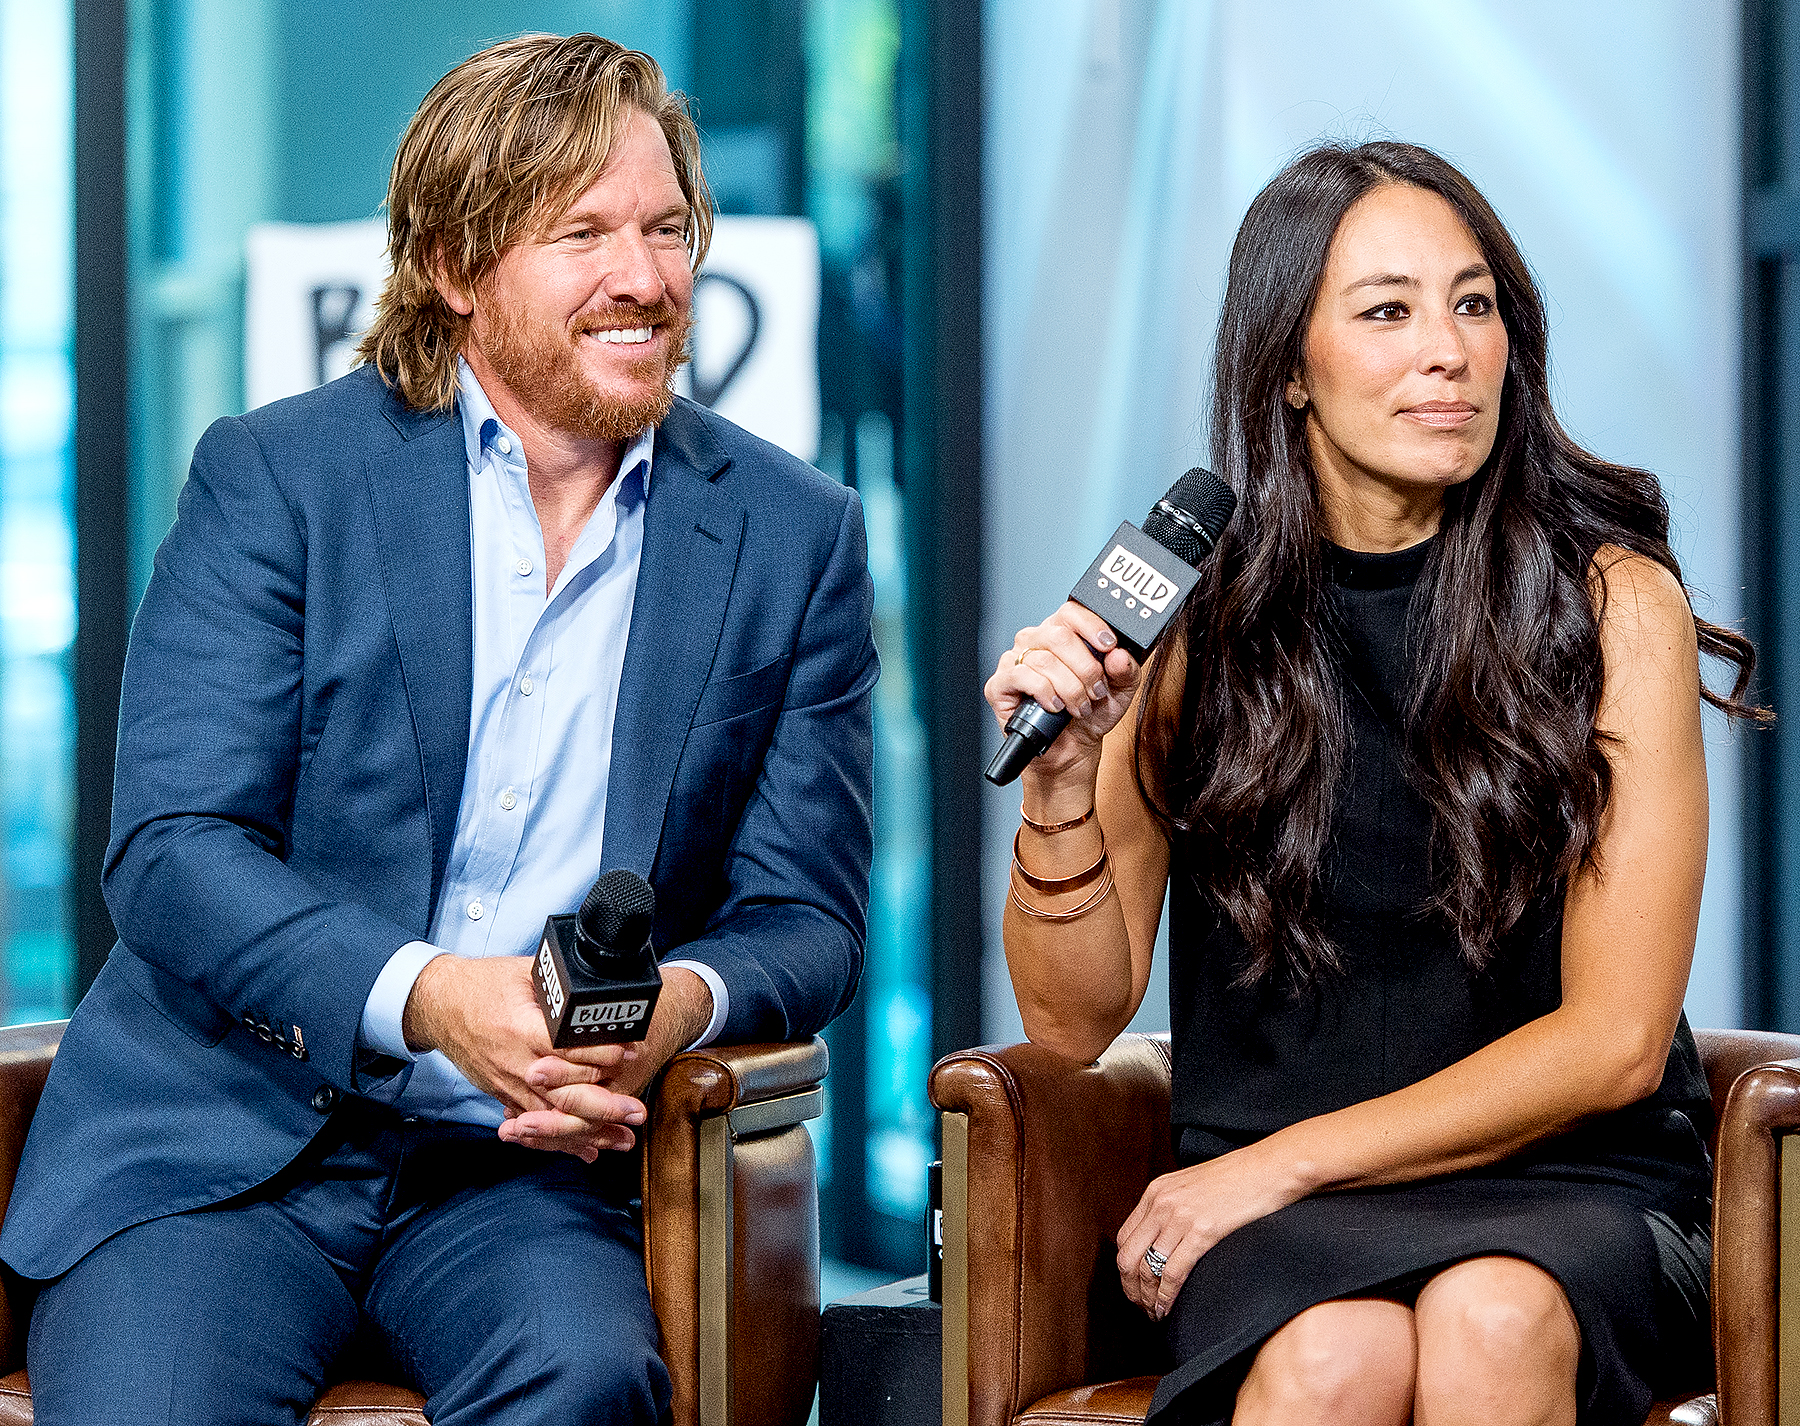 'Fixer Upper' stars Chip and Joanna Gaines expecting their fifth child